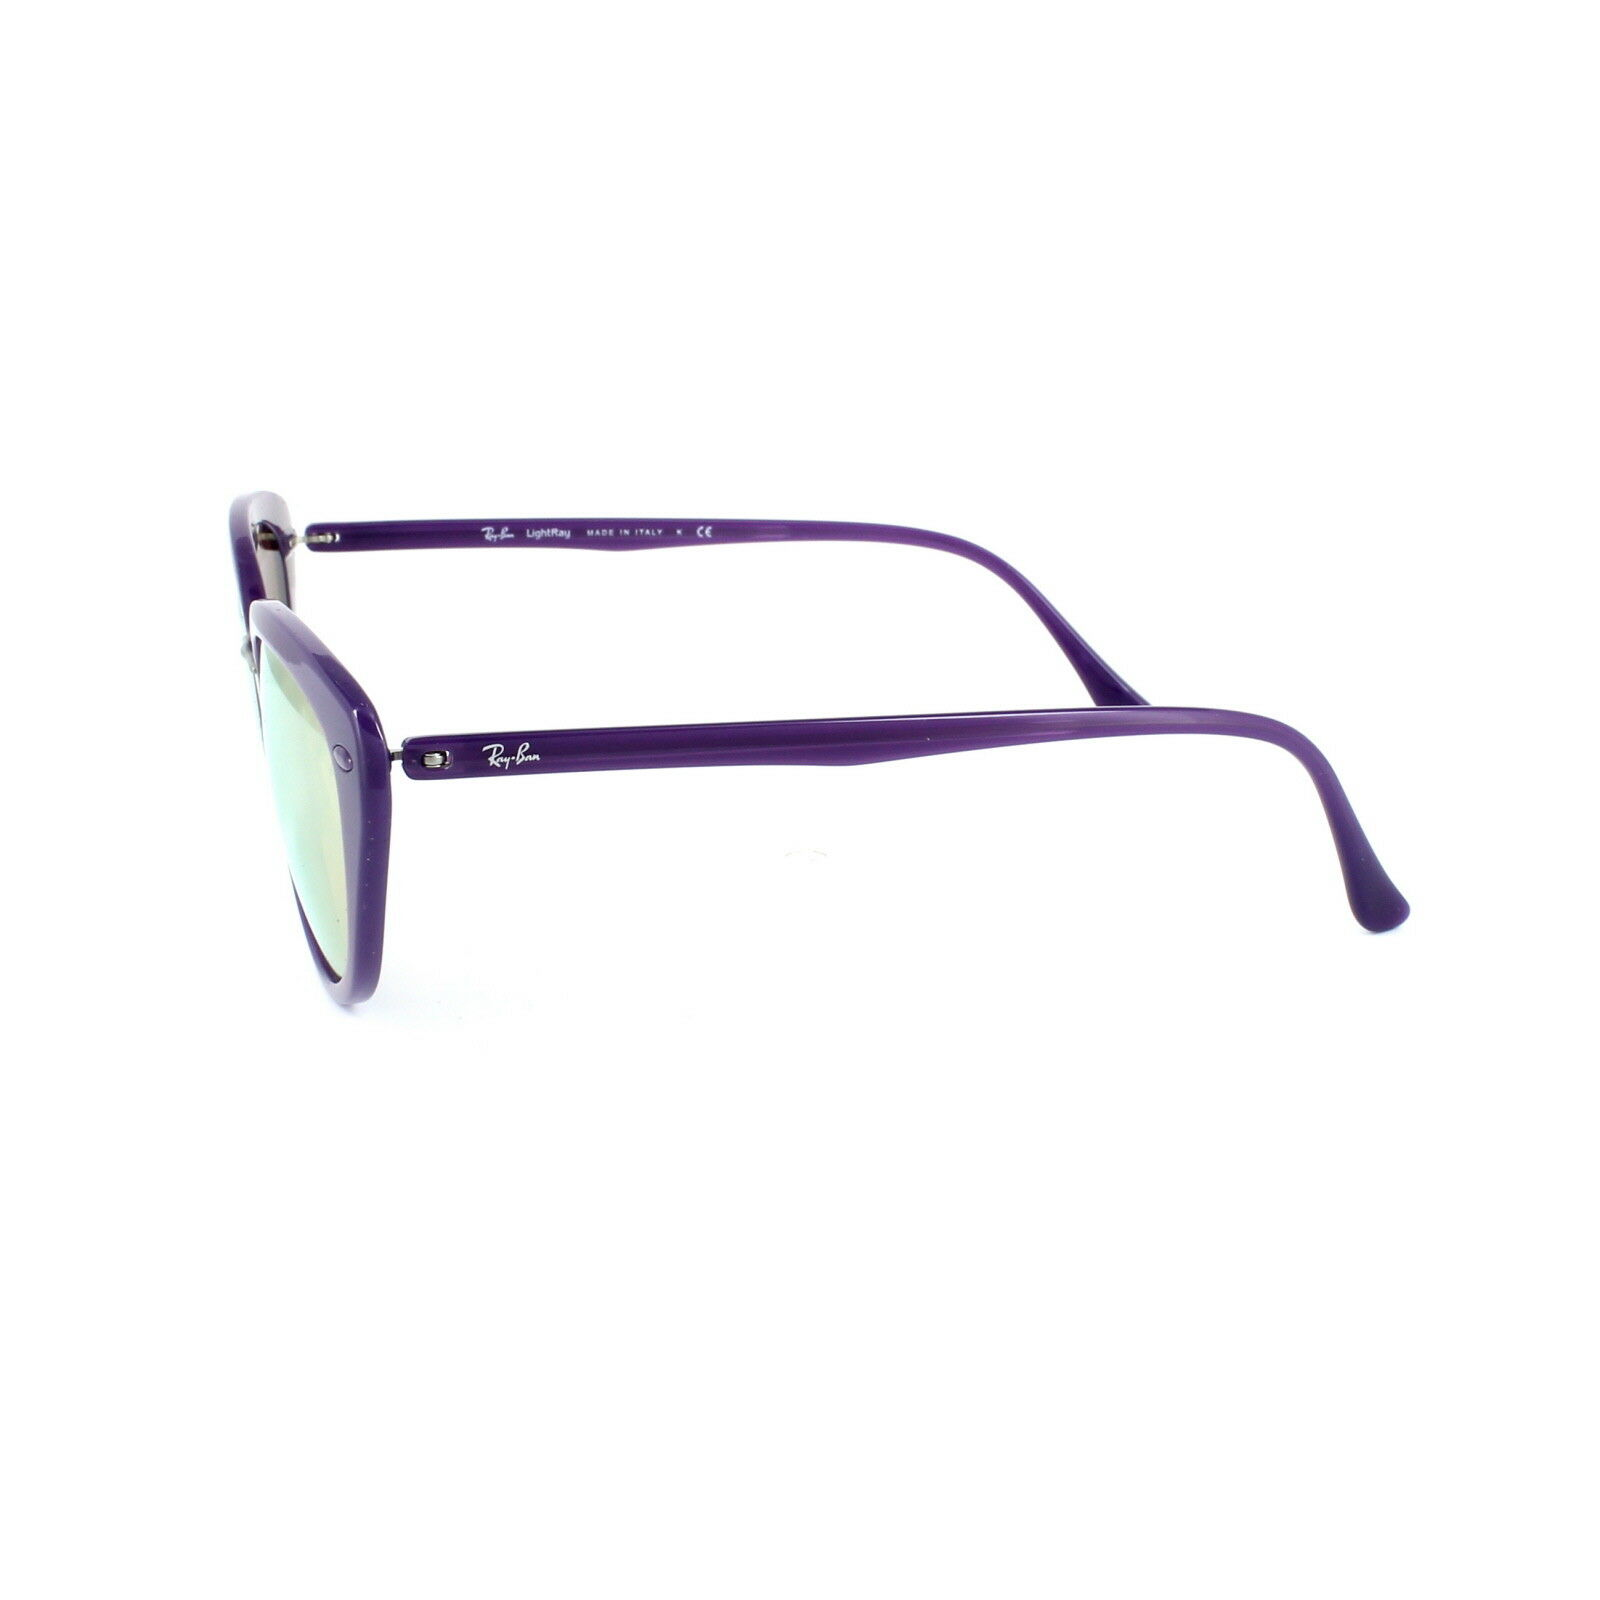 2131dd034b3 Sunglasses Ray-Ban Tech Light Rb4250 6034 2y 52 Shiny Violet for ...